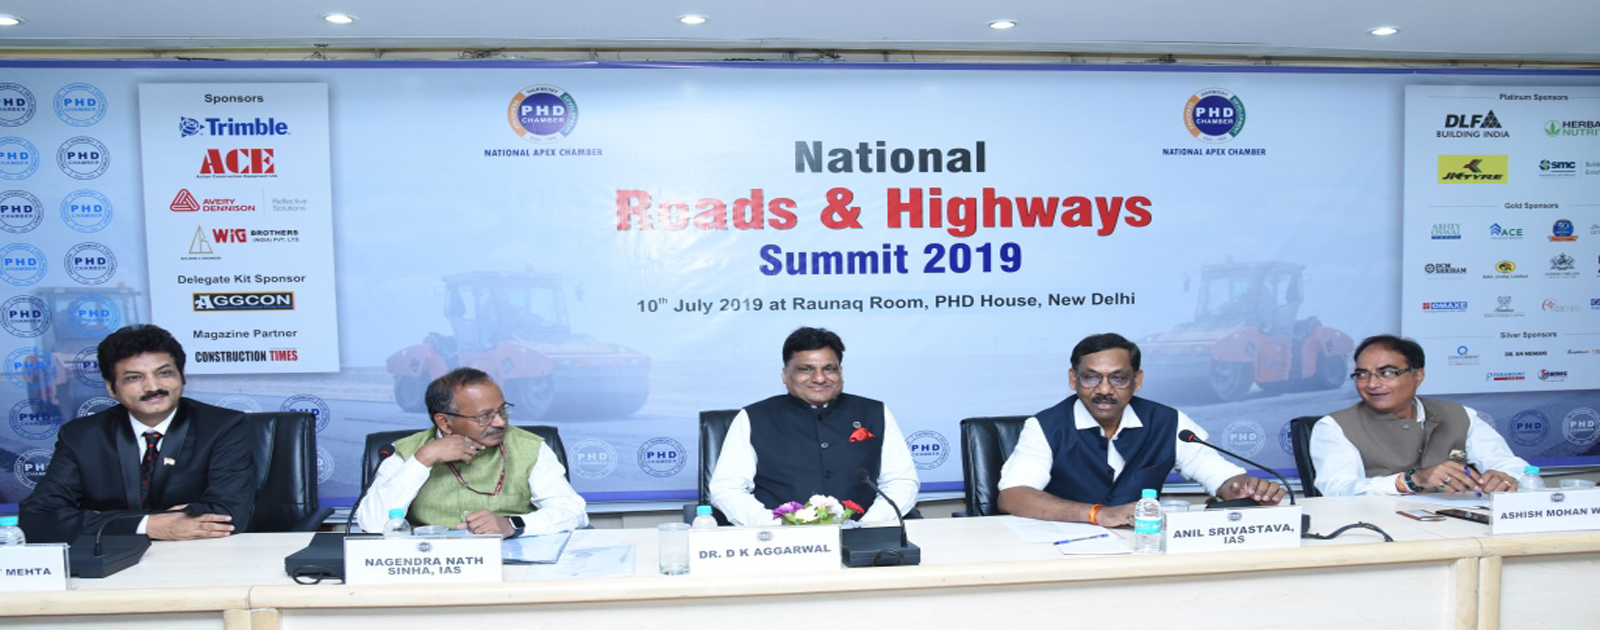 National Roads and Highways Summit 2019